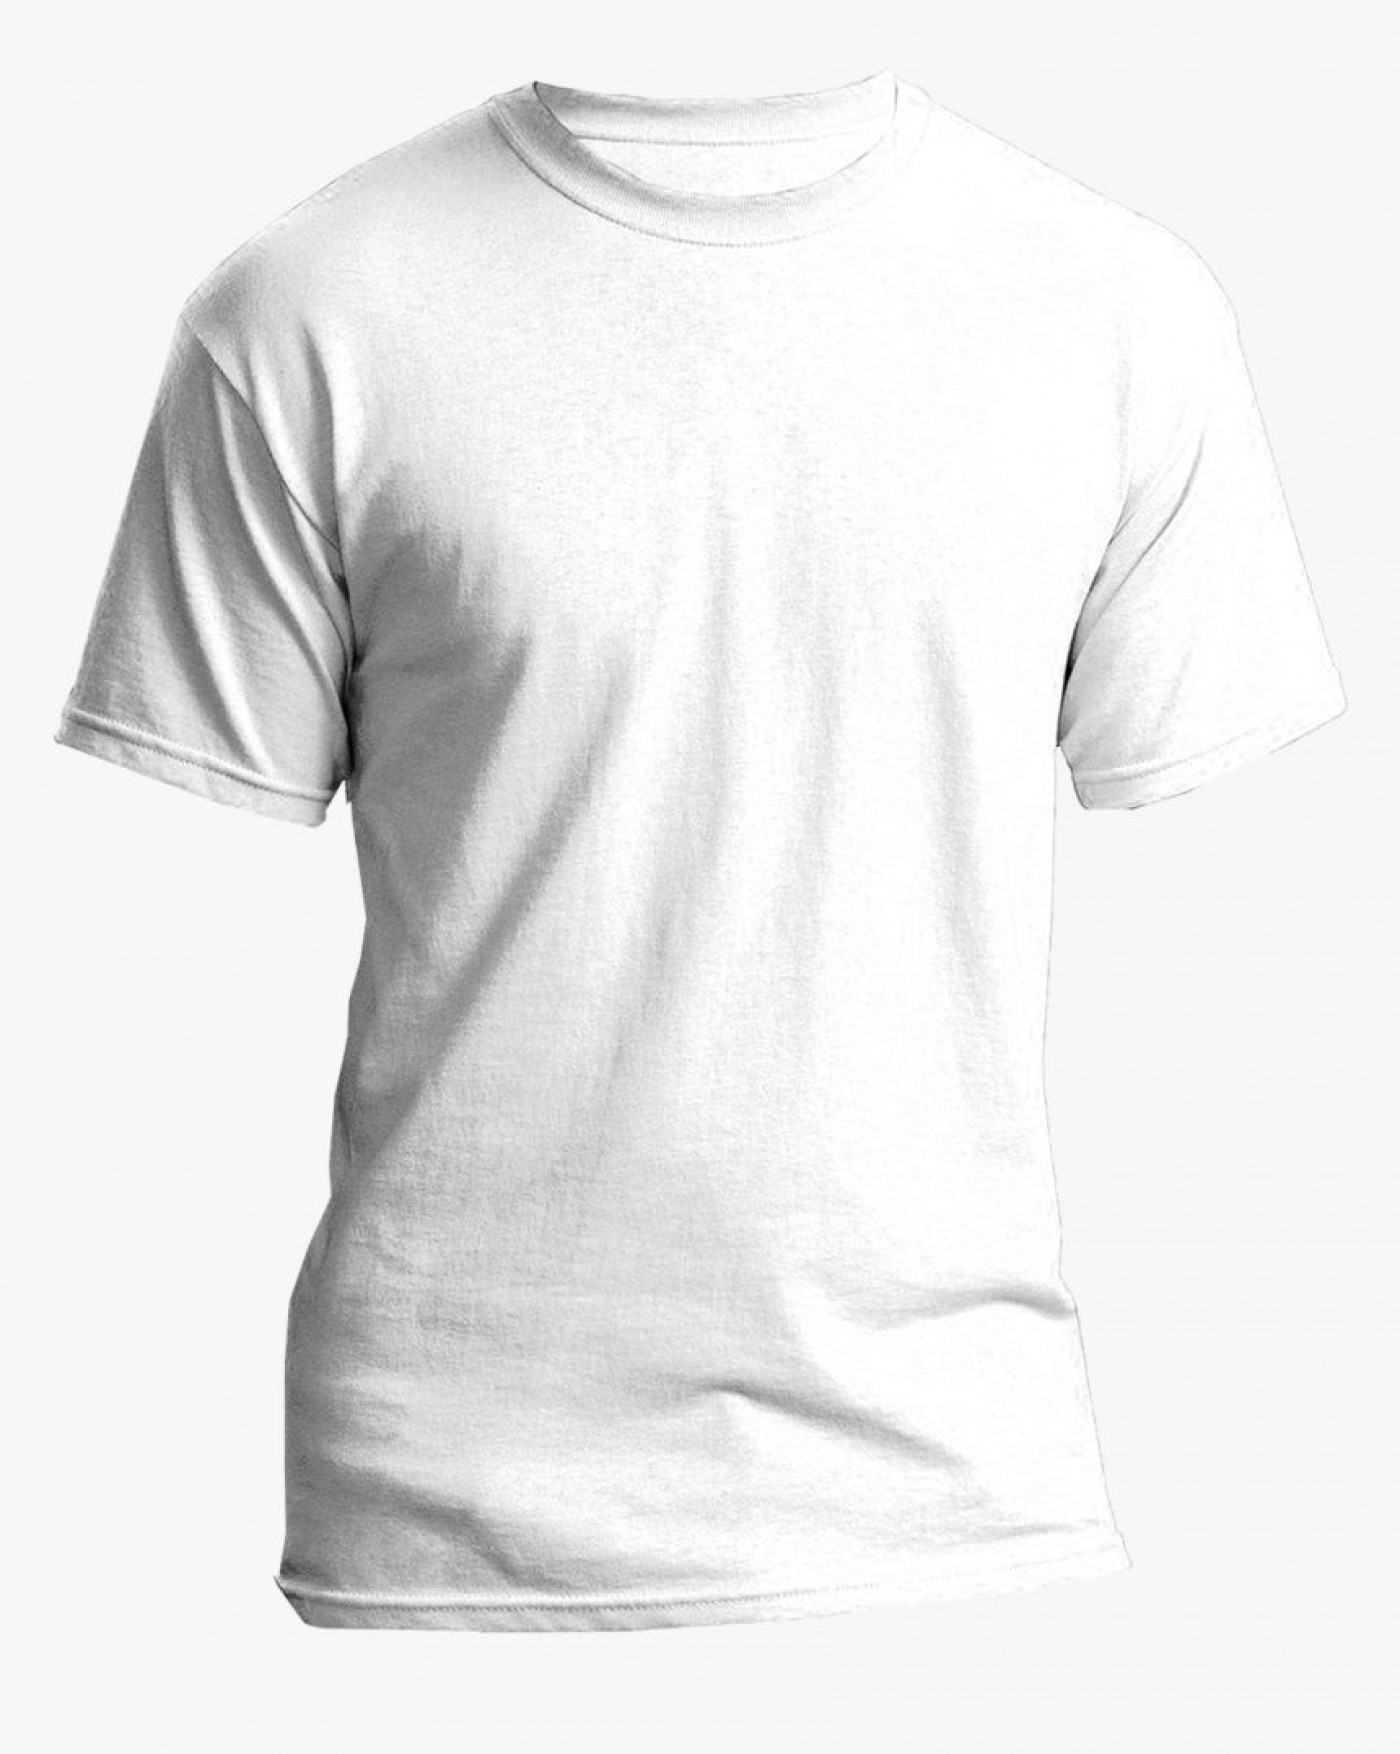 000 Impressive Plain T Shirt Template Concept  Blank Front And Back1400